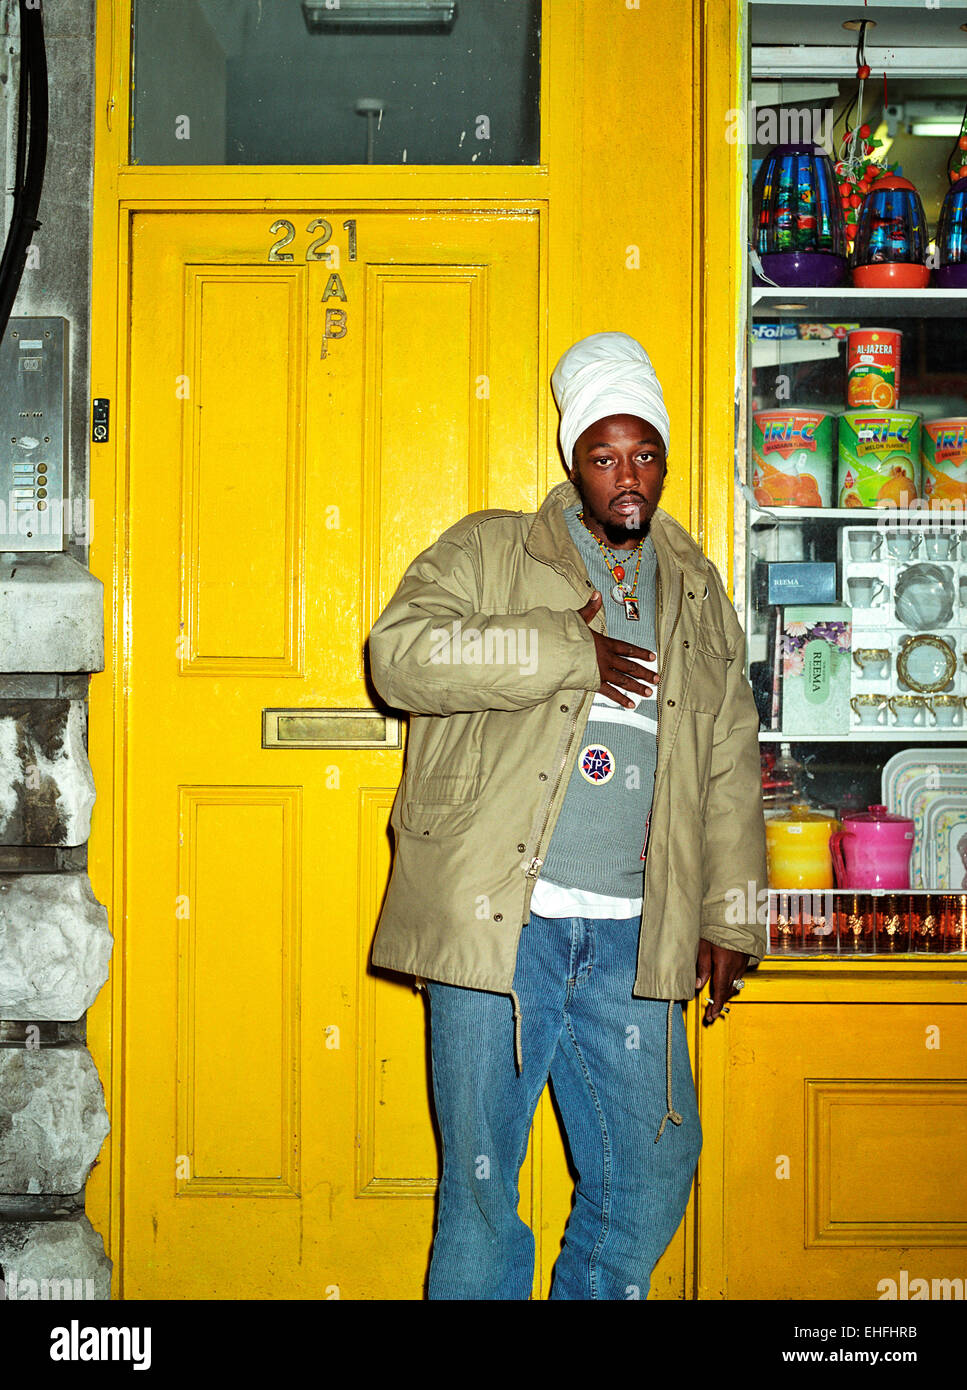 Portrait of Ras Shiloh from The Fifth Element in Streatham London. - Stock Image